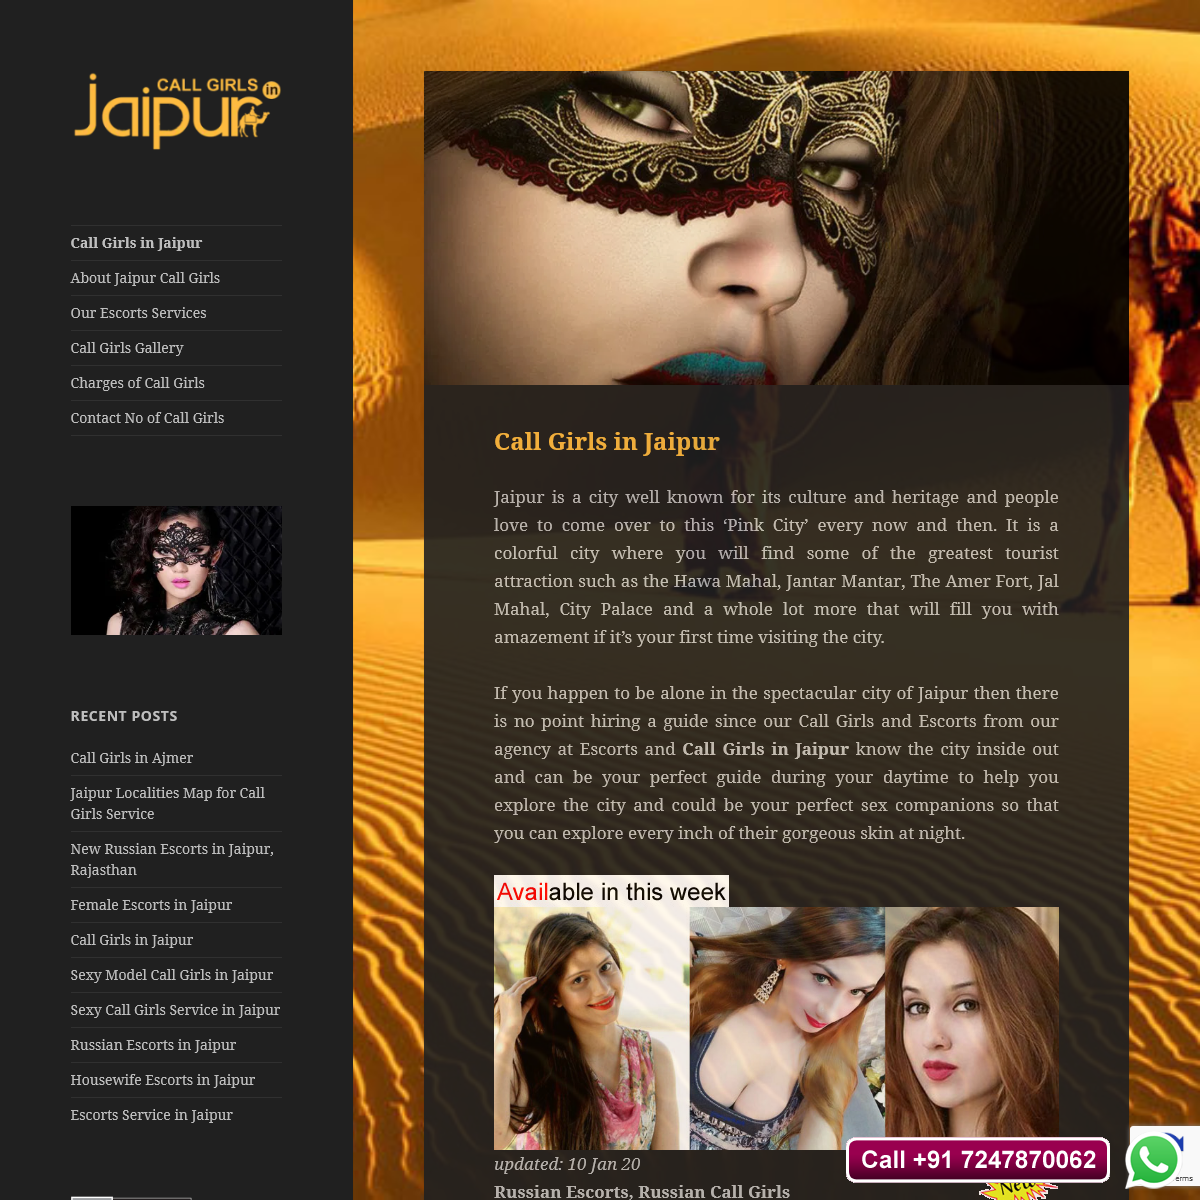 Call Girls Service in Jaipur, Independent Russian Call Girls in Jaipur